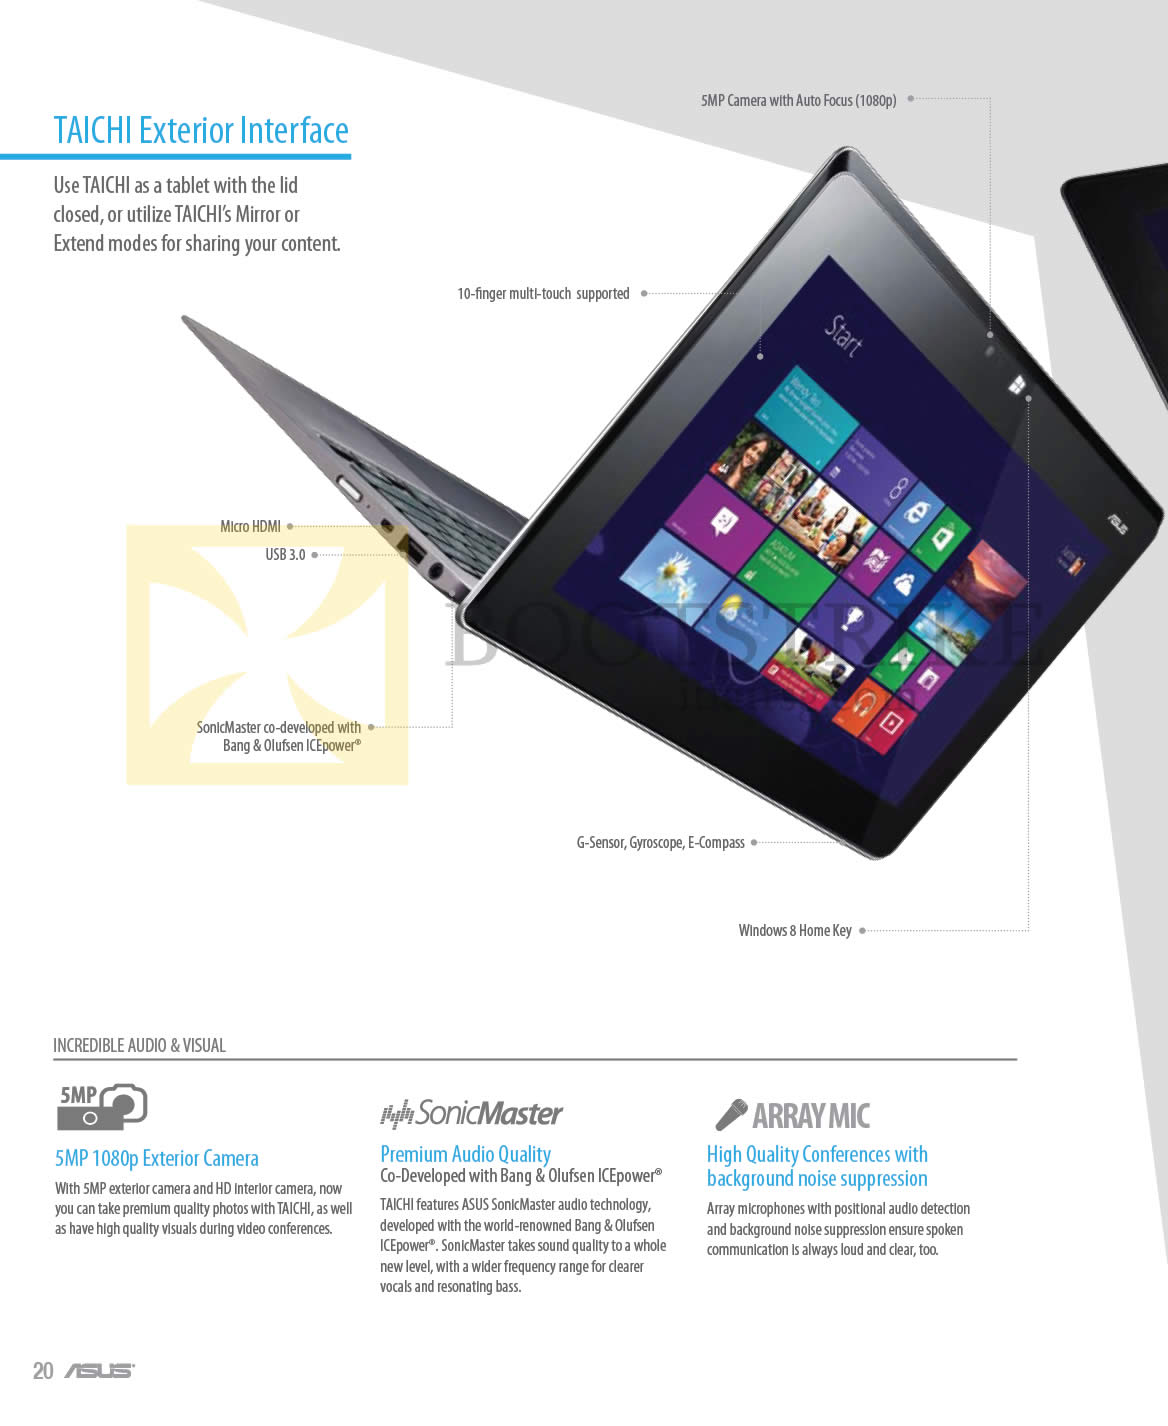 COMEX 2013 price list image brochure of ASUS Notebooks Taichi Exterior Interface, Camera, Audio, Array Mic